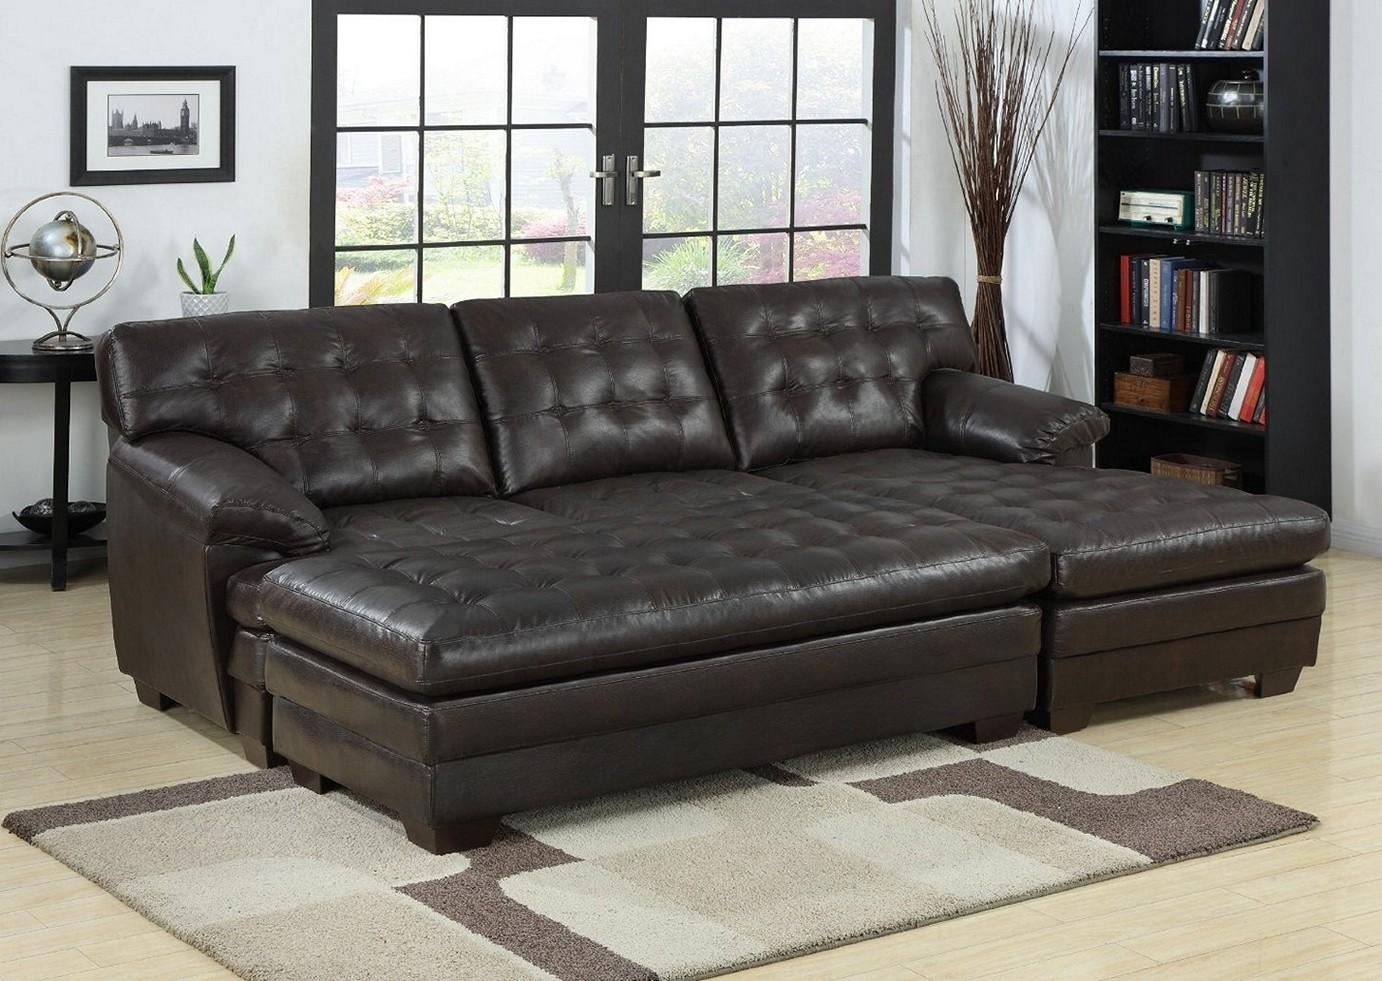 Sofas Center : Outstanding Chaise Lounge Sofa Pictures Ideas Beds Throughout Sofa Beds With Chaise Lounge (Image 19 of 20)